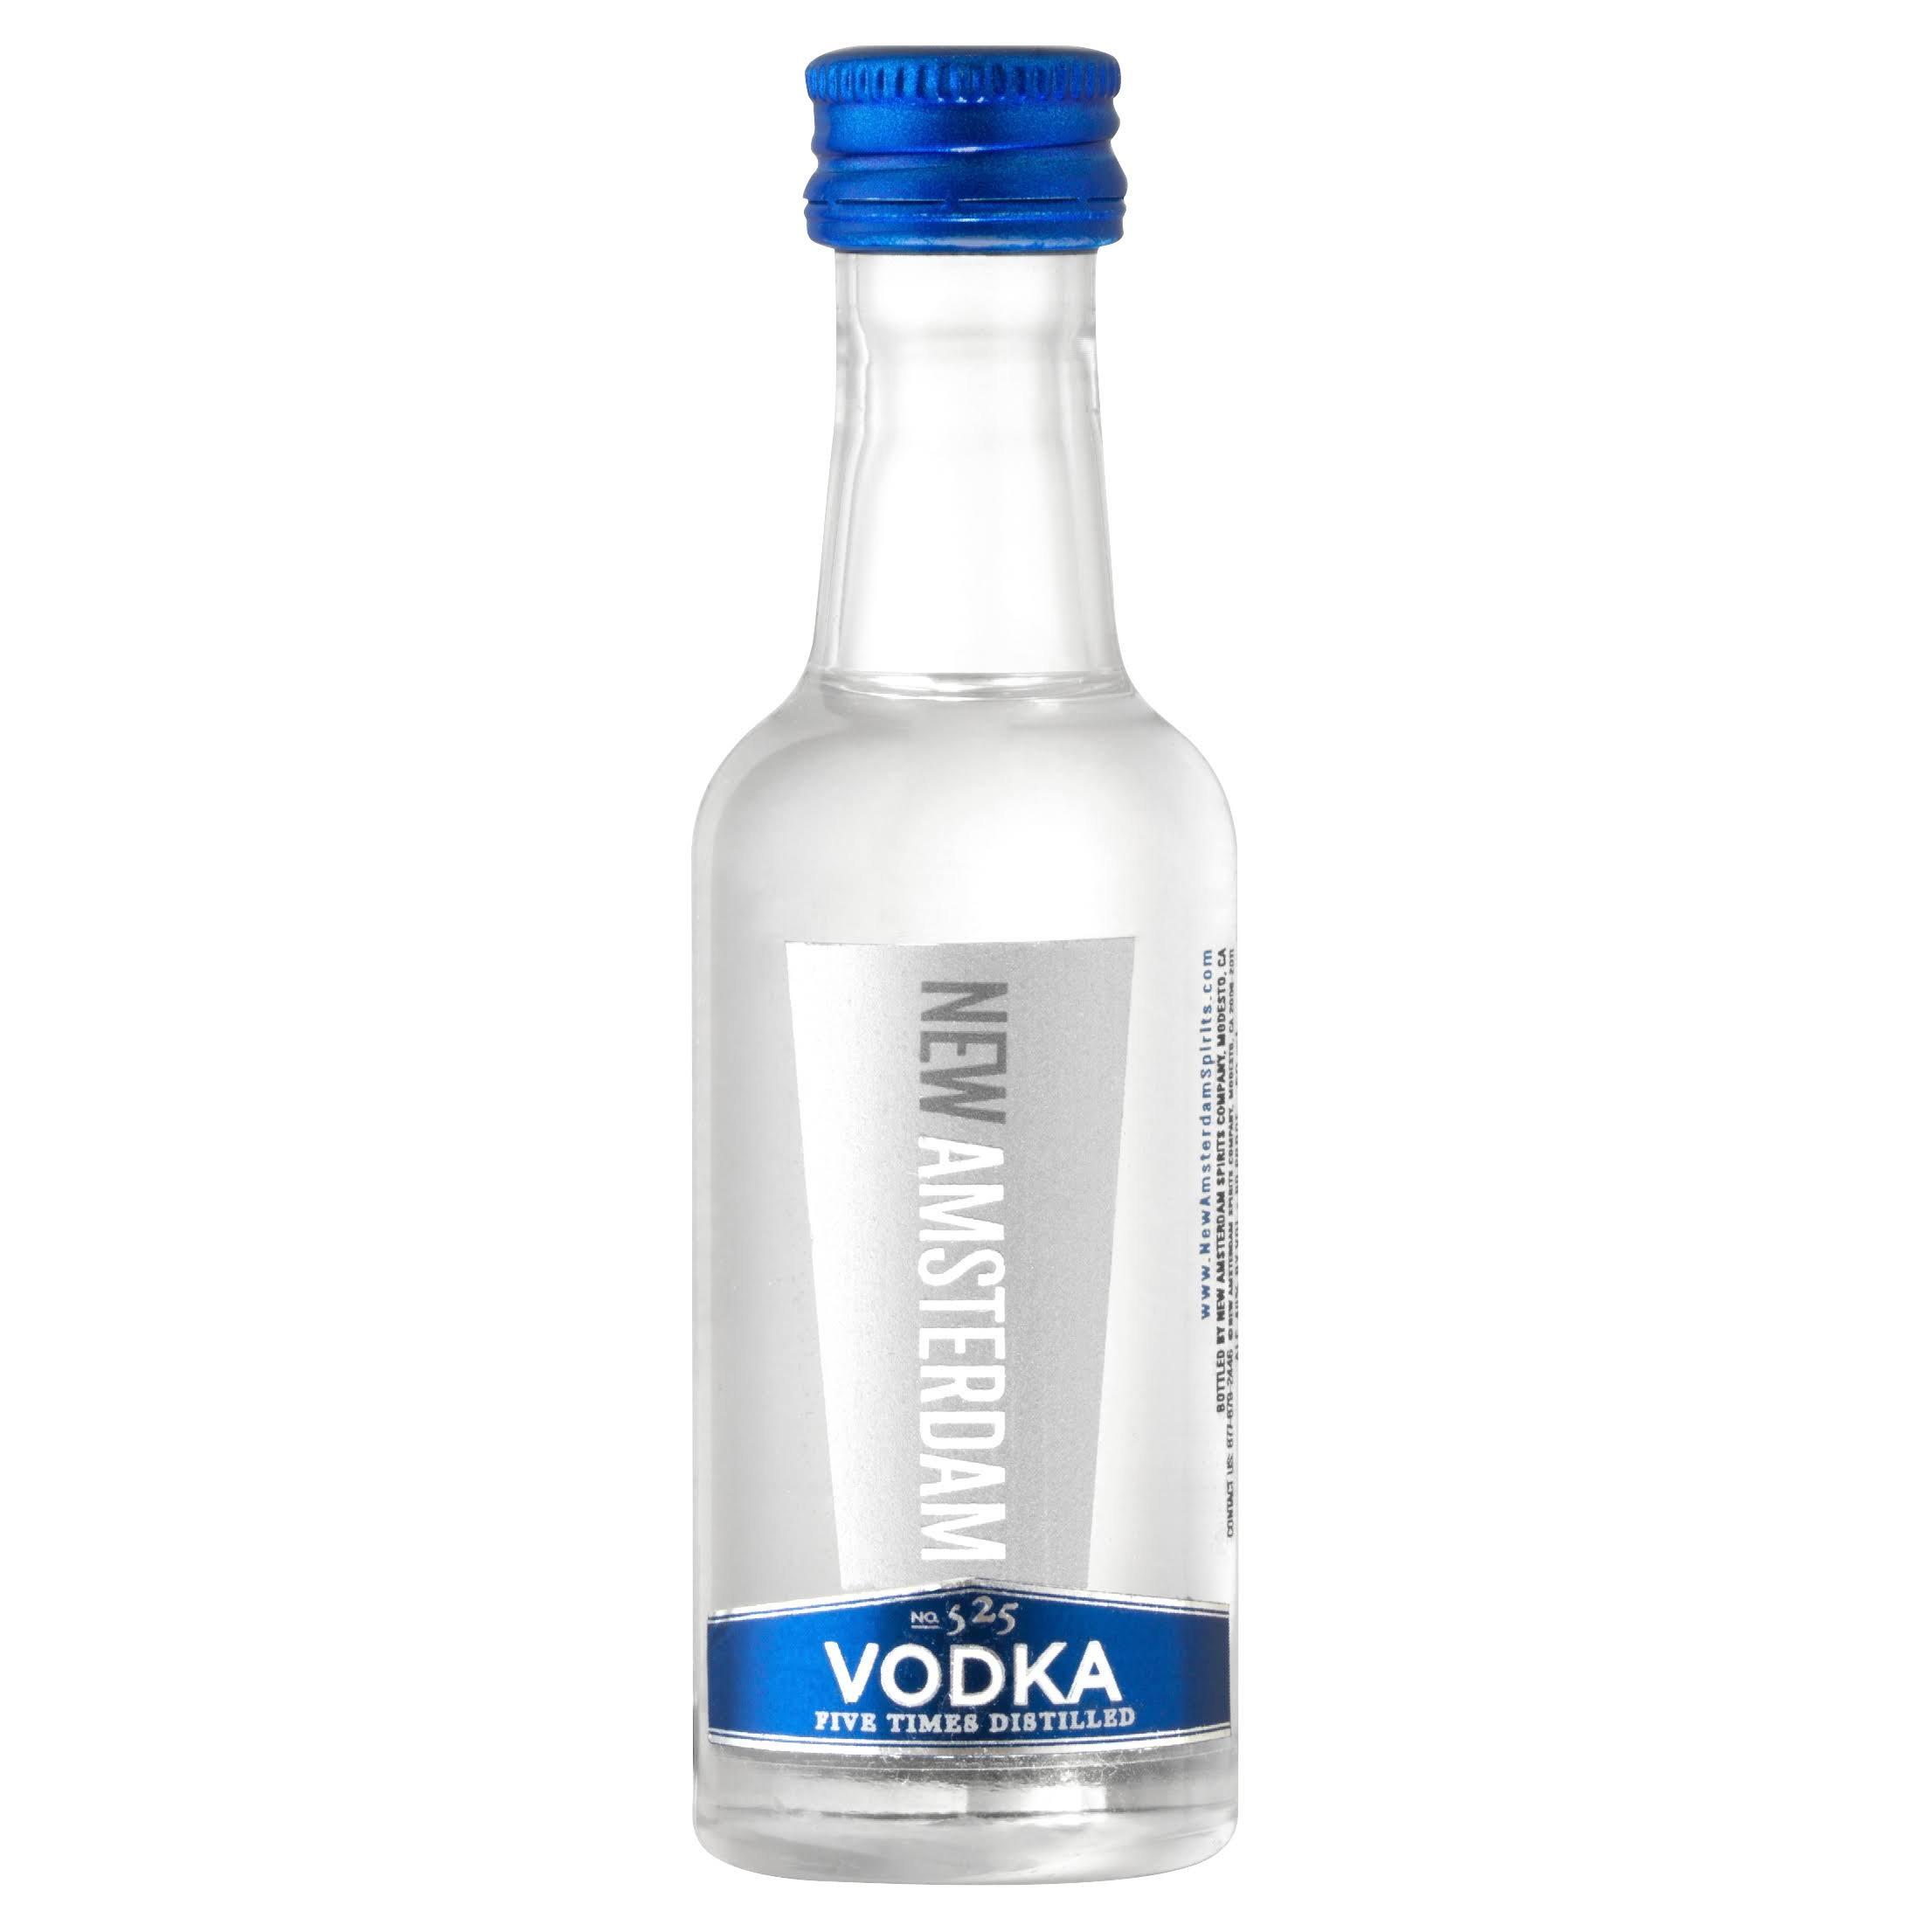 New Amsterdam Vodka - 50 ml bottle